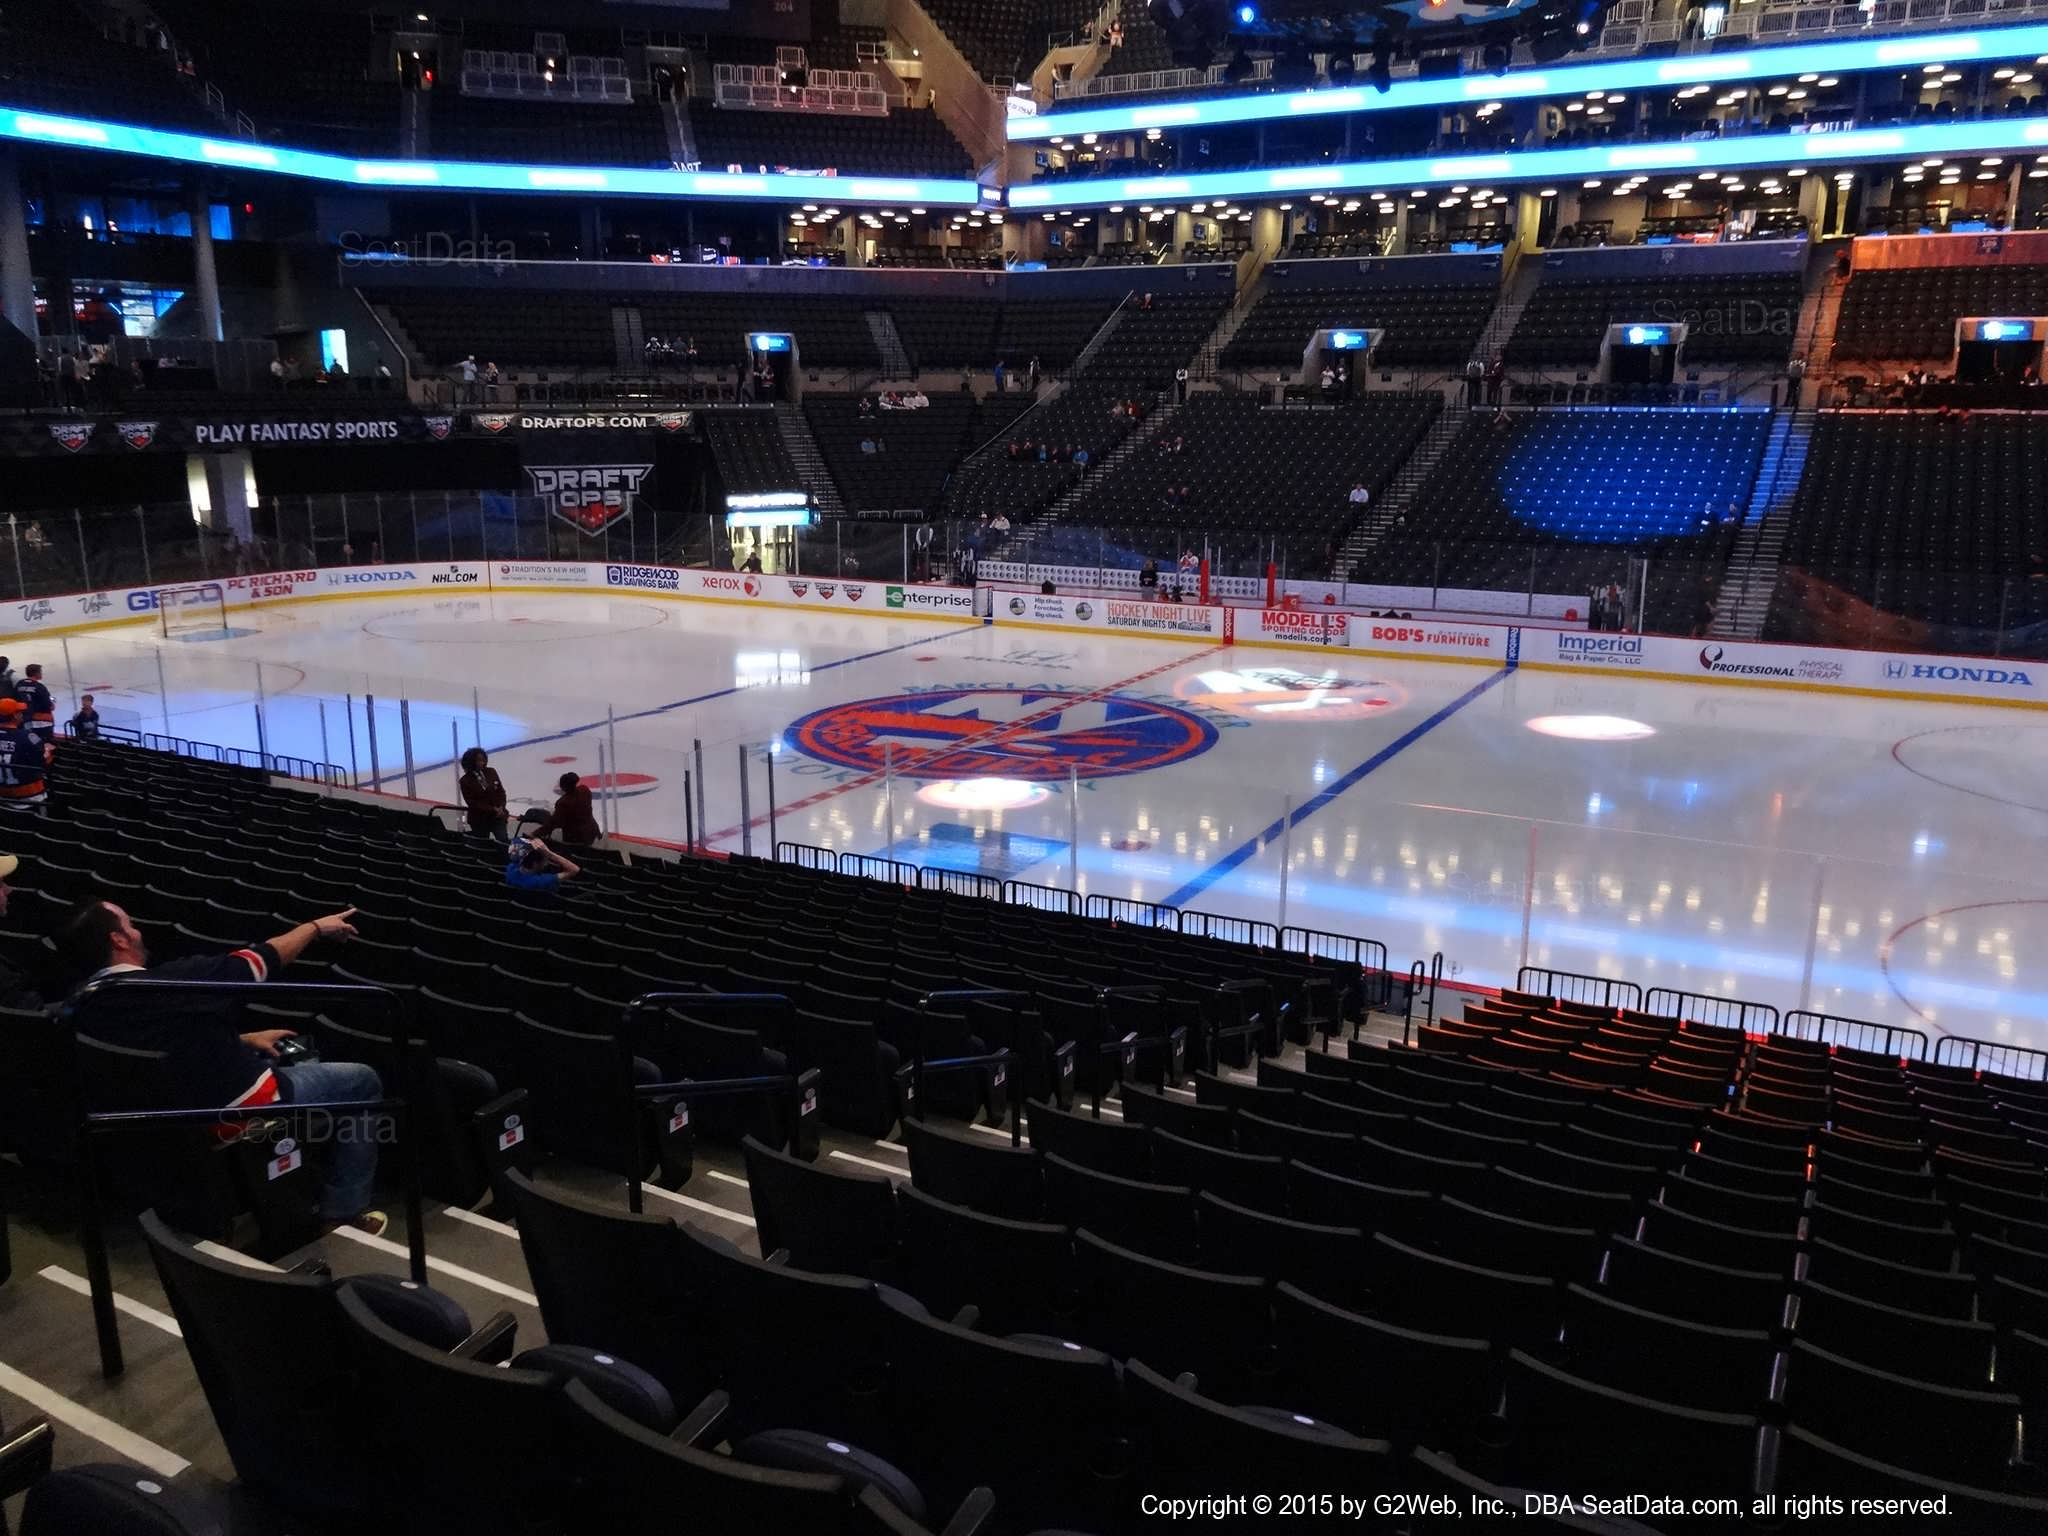 Seat view from section 23 at the Barclays Center, home of the New York Islanders